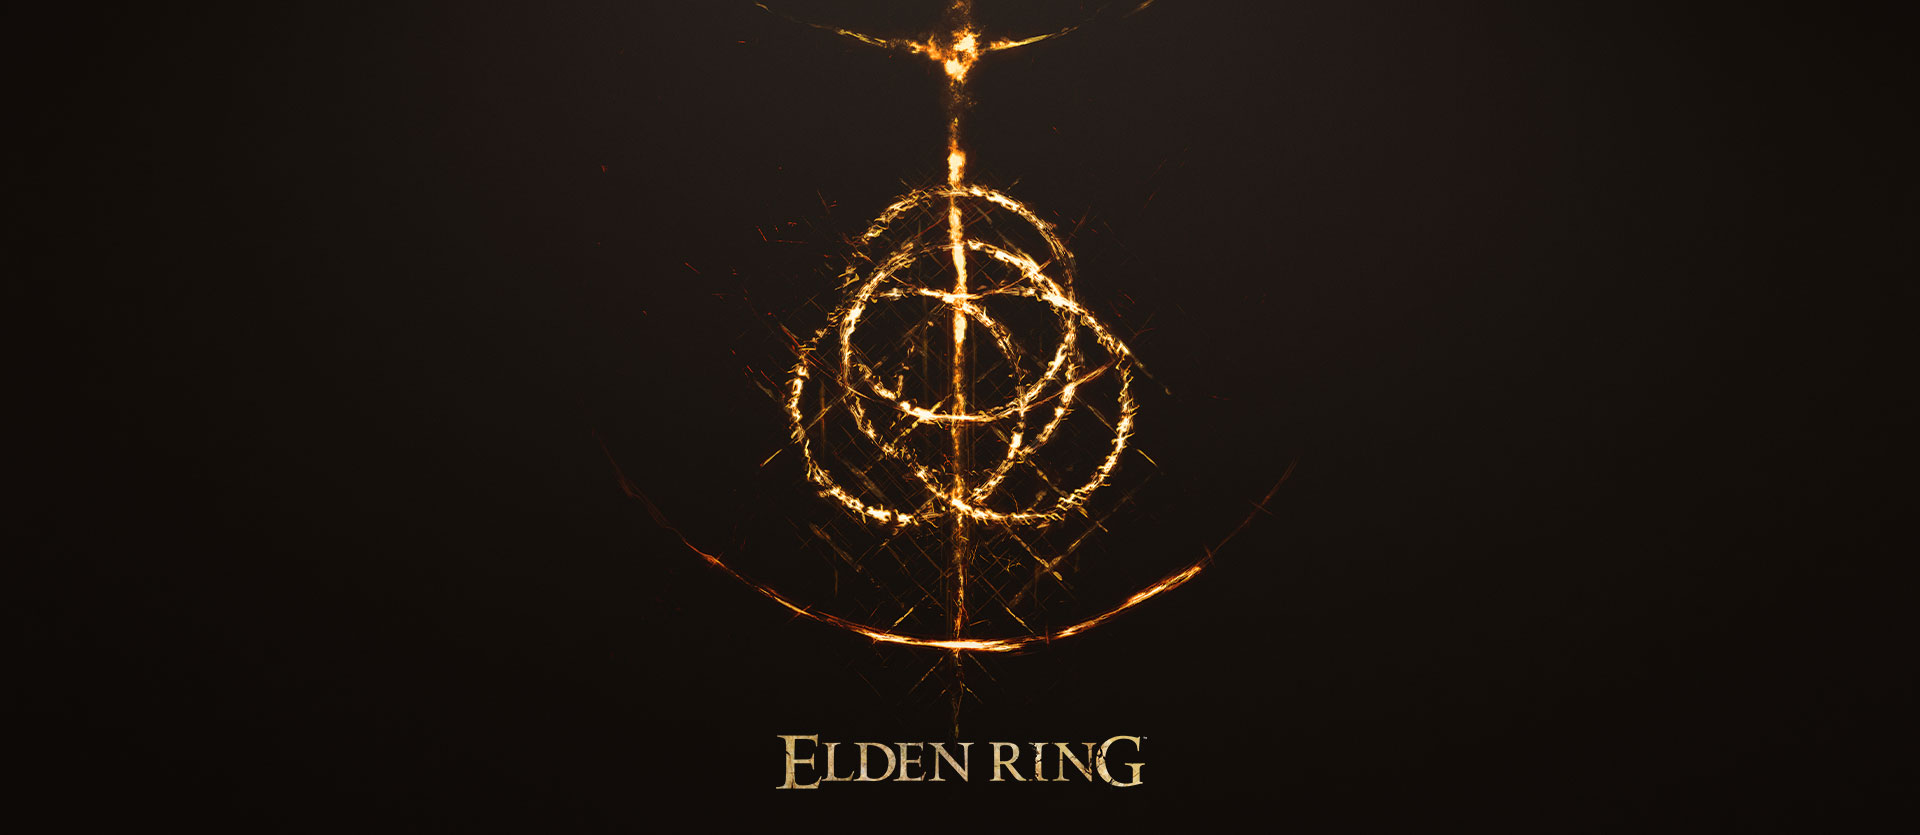 Logotipo do Elden Ring